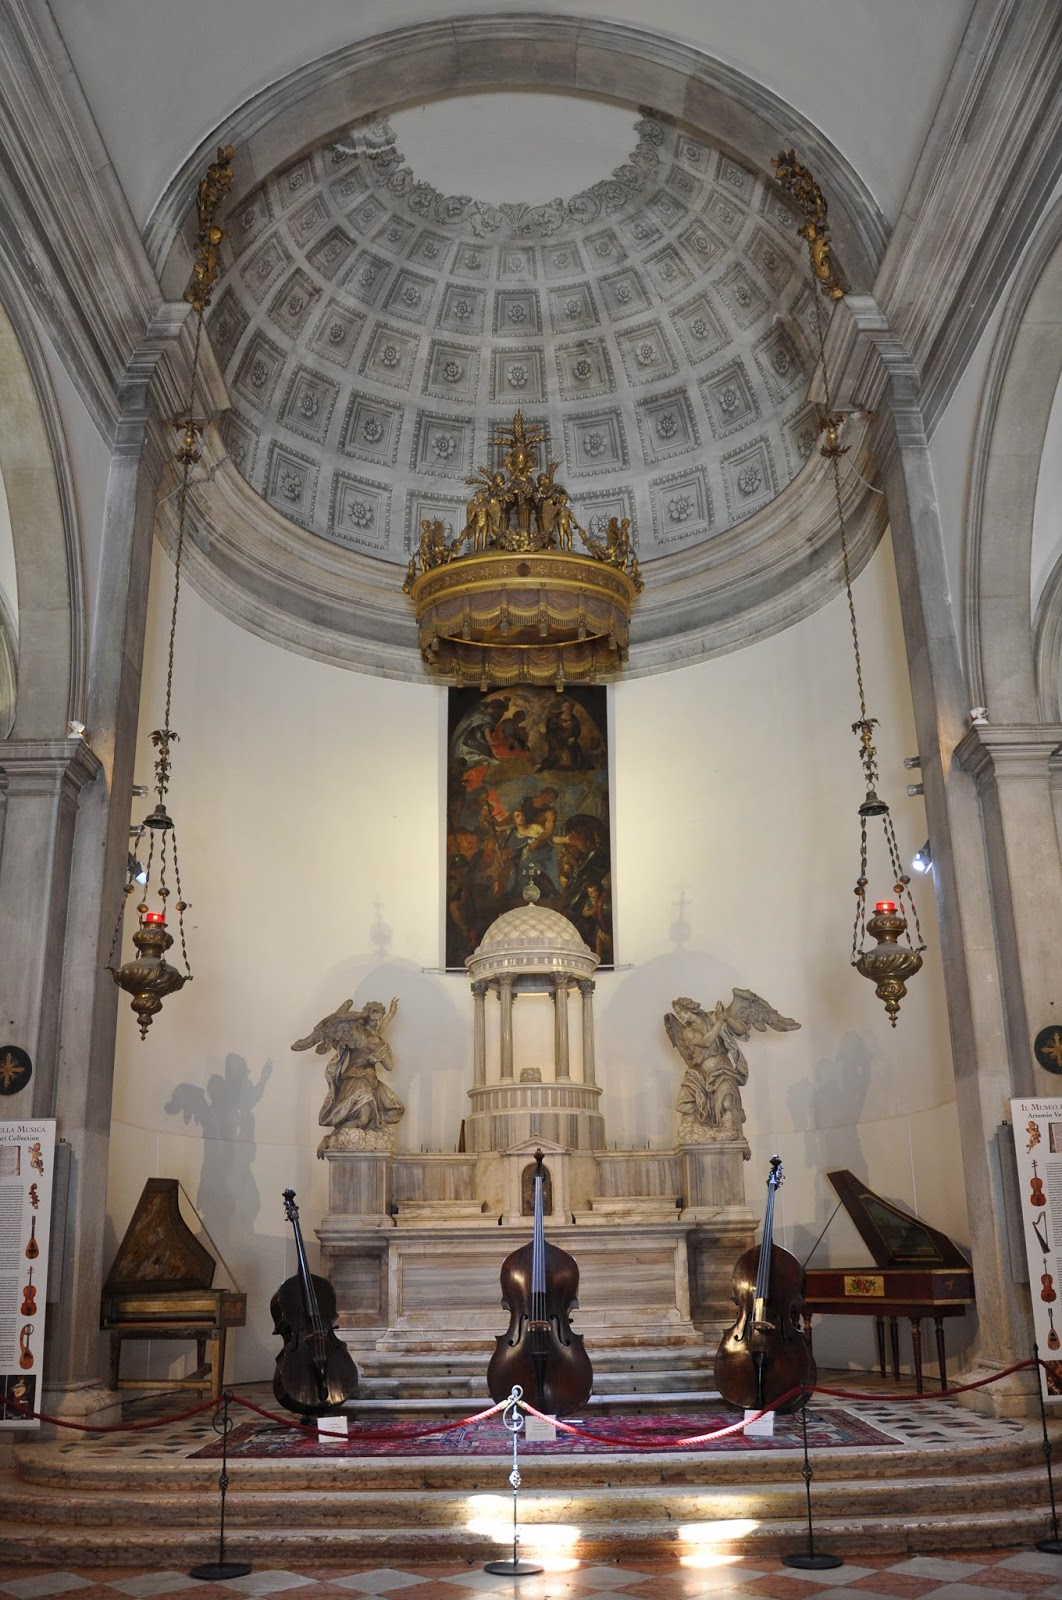 The music altar, Museum of the Music, Venice, Italy